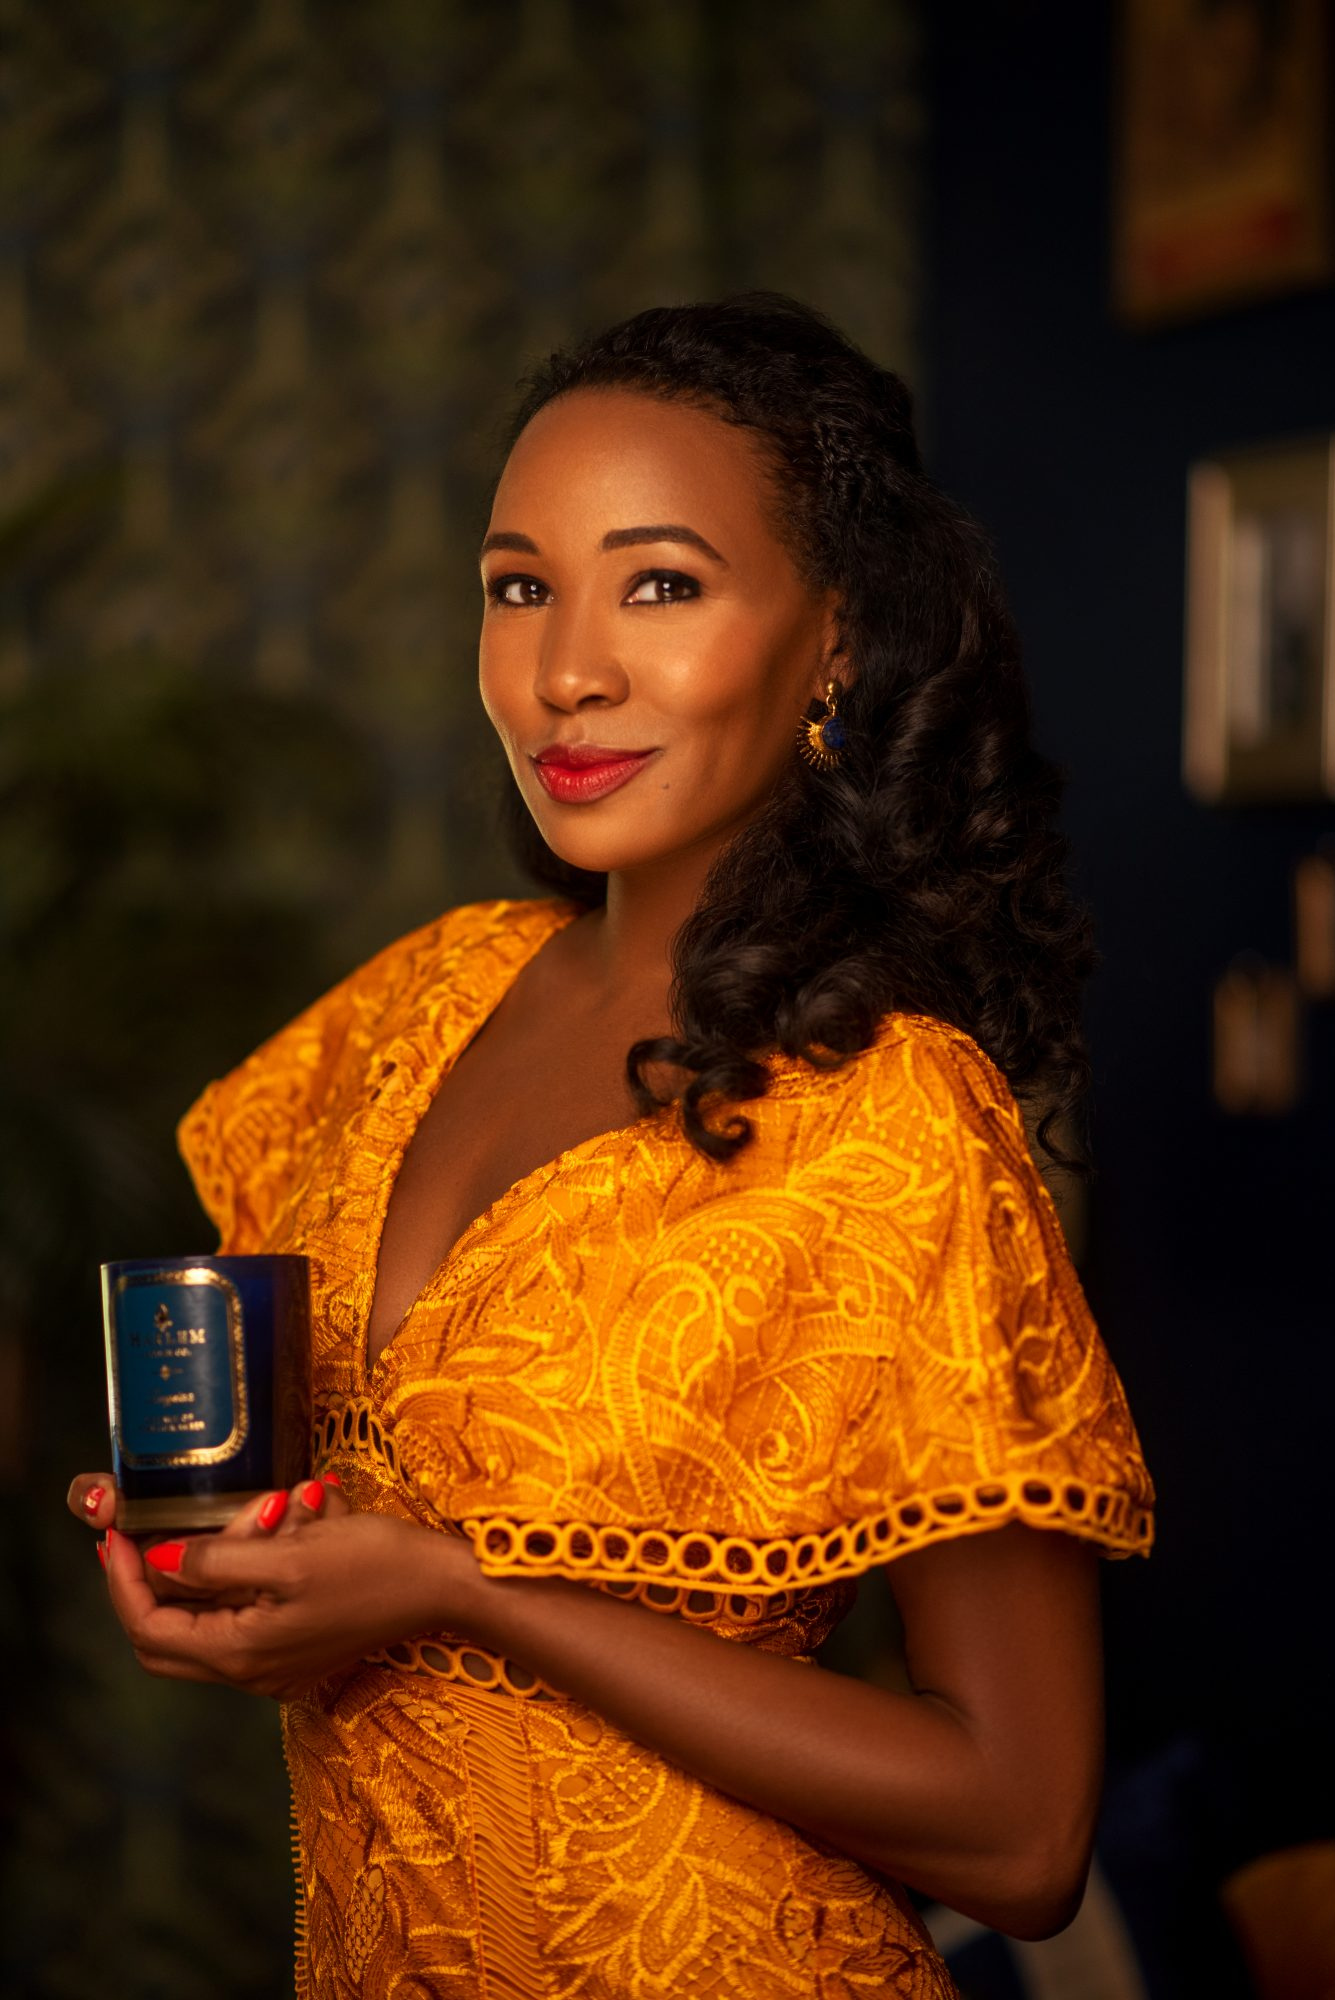 harlem candle company founder and ceo teri johnson holding signature candle